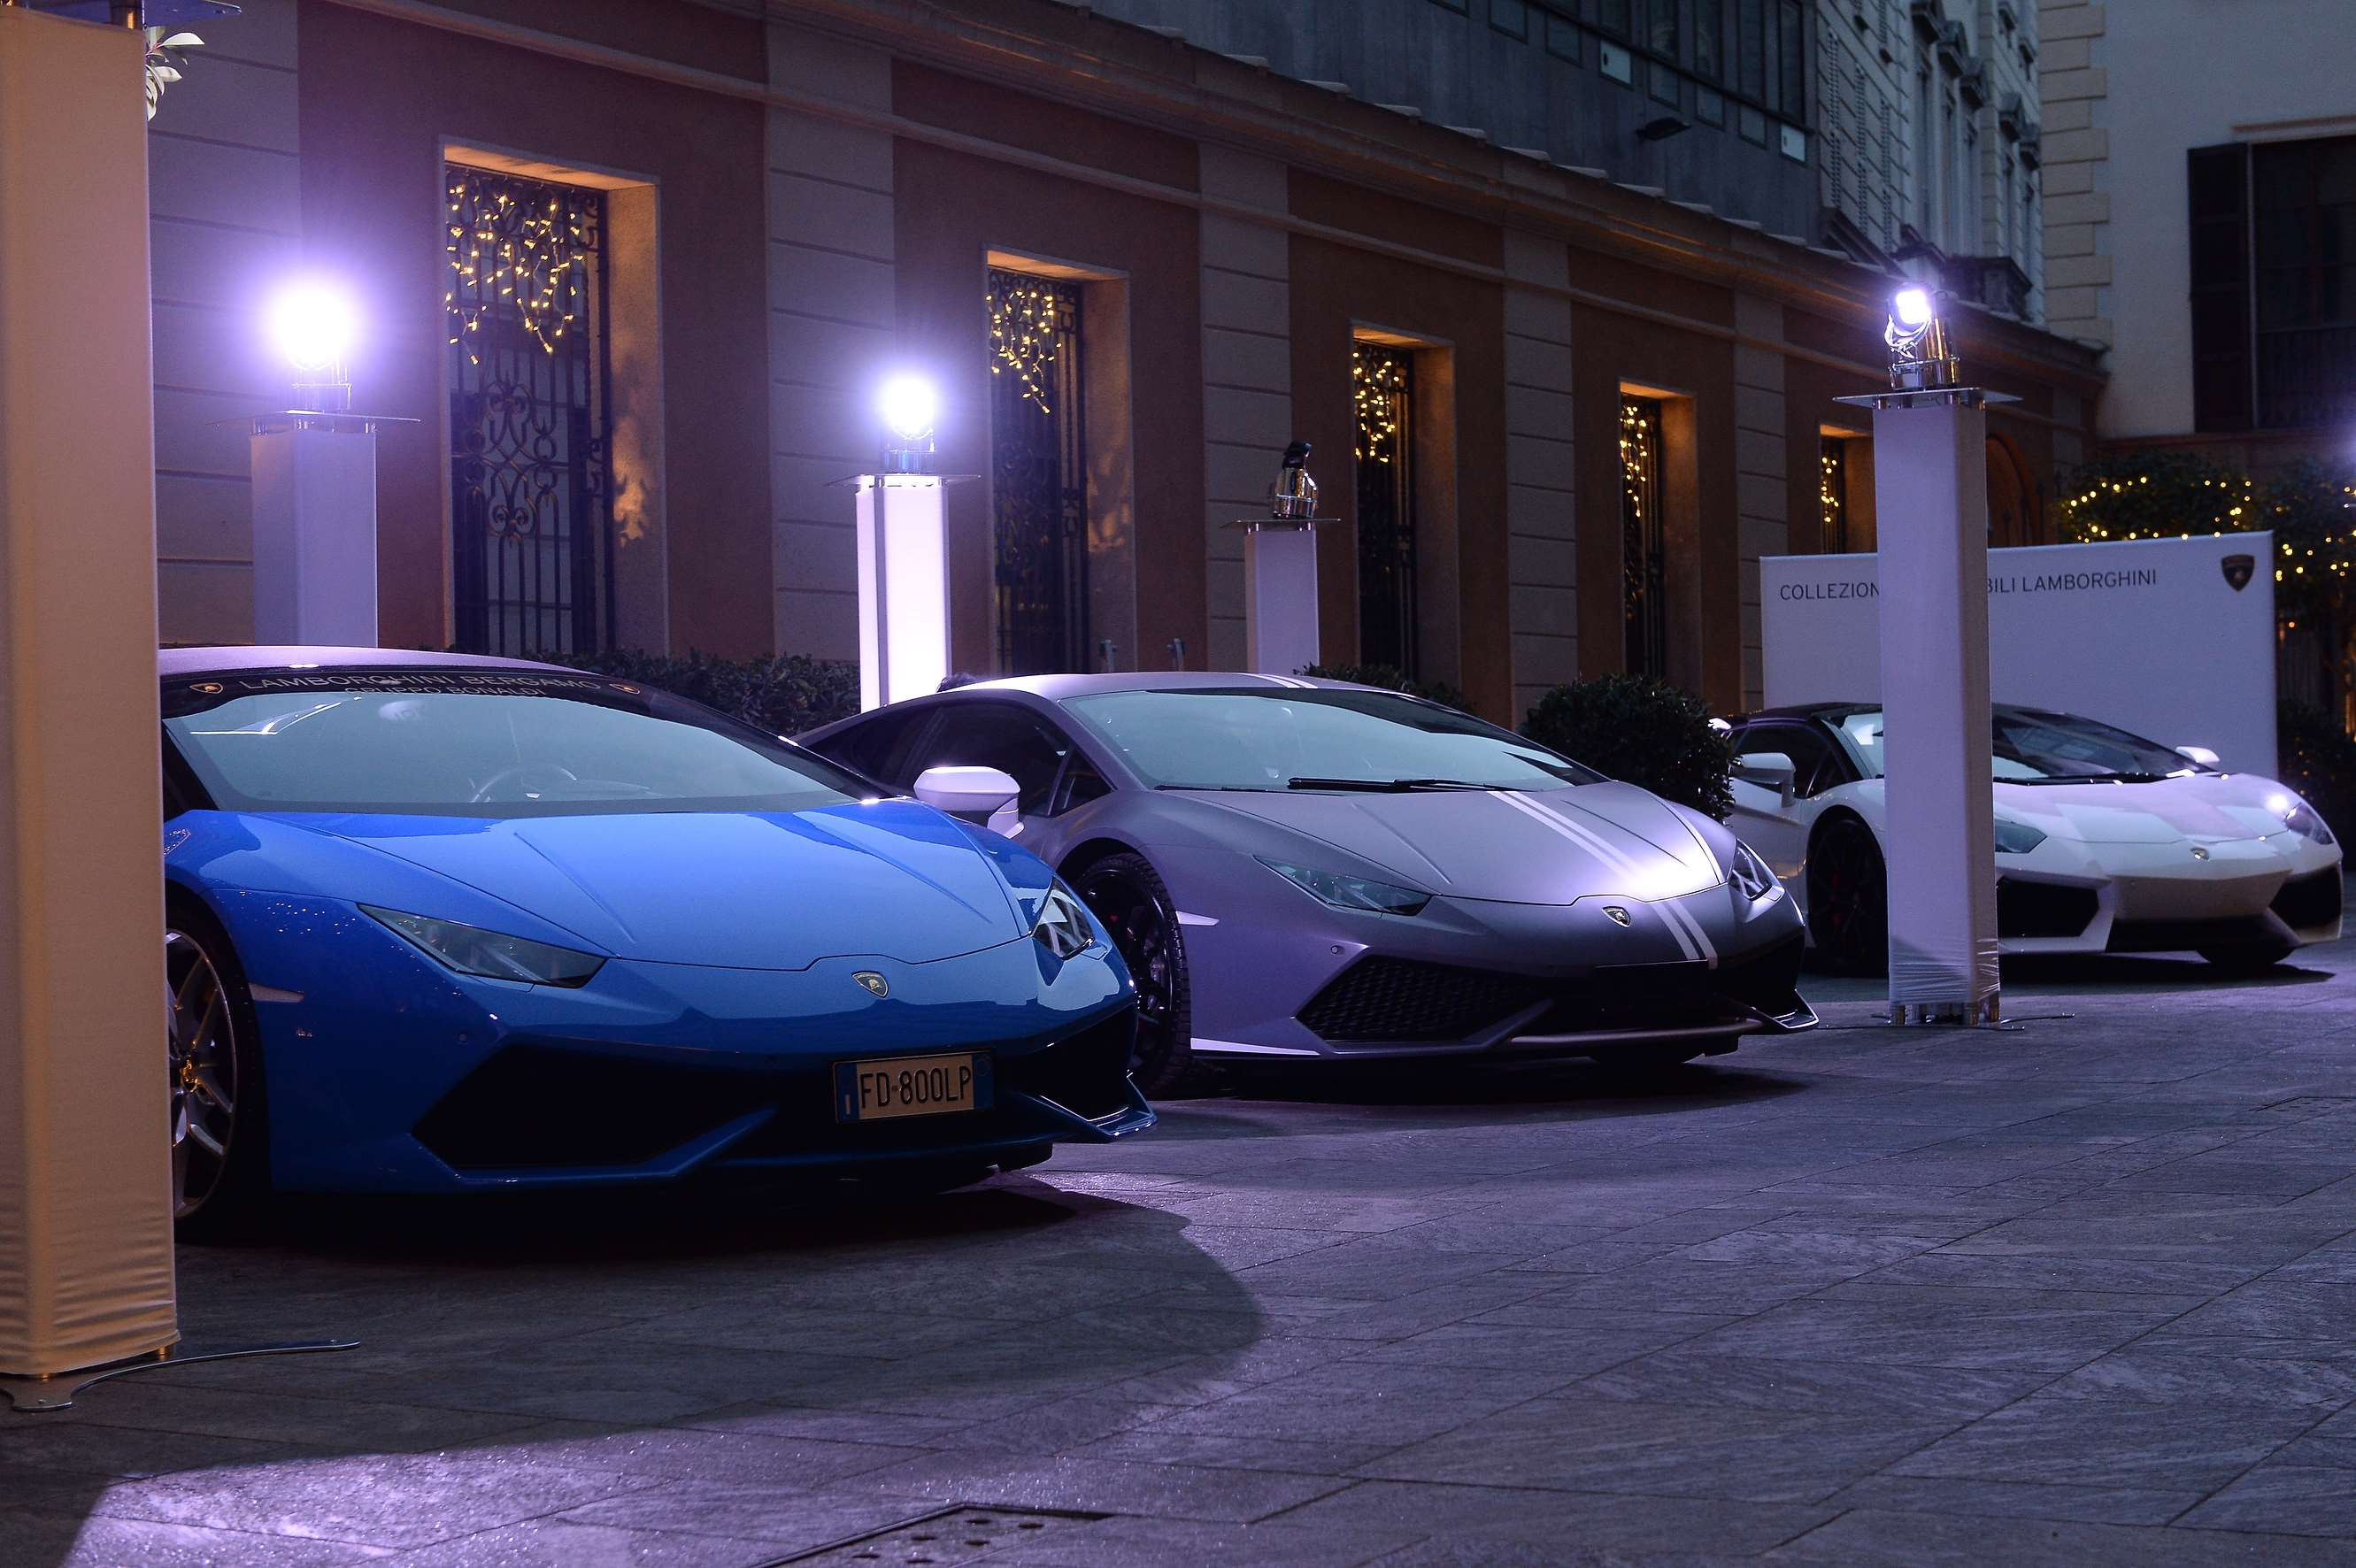 Collezione Automobili Lamborghini and L'Uomo Vogue together for a special event during Milan Men's Fashion Week